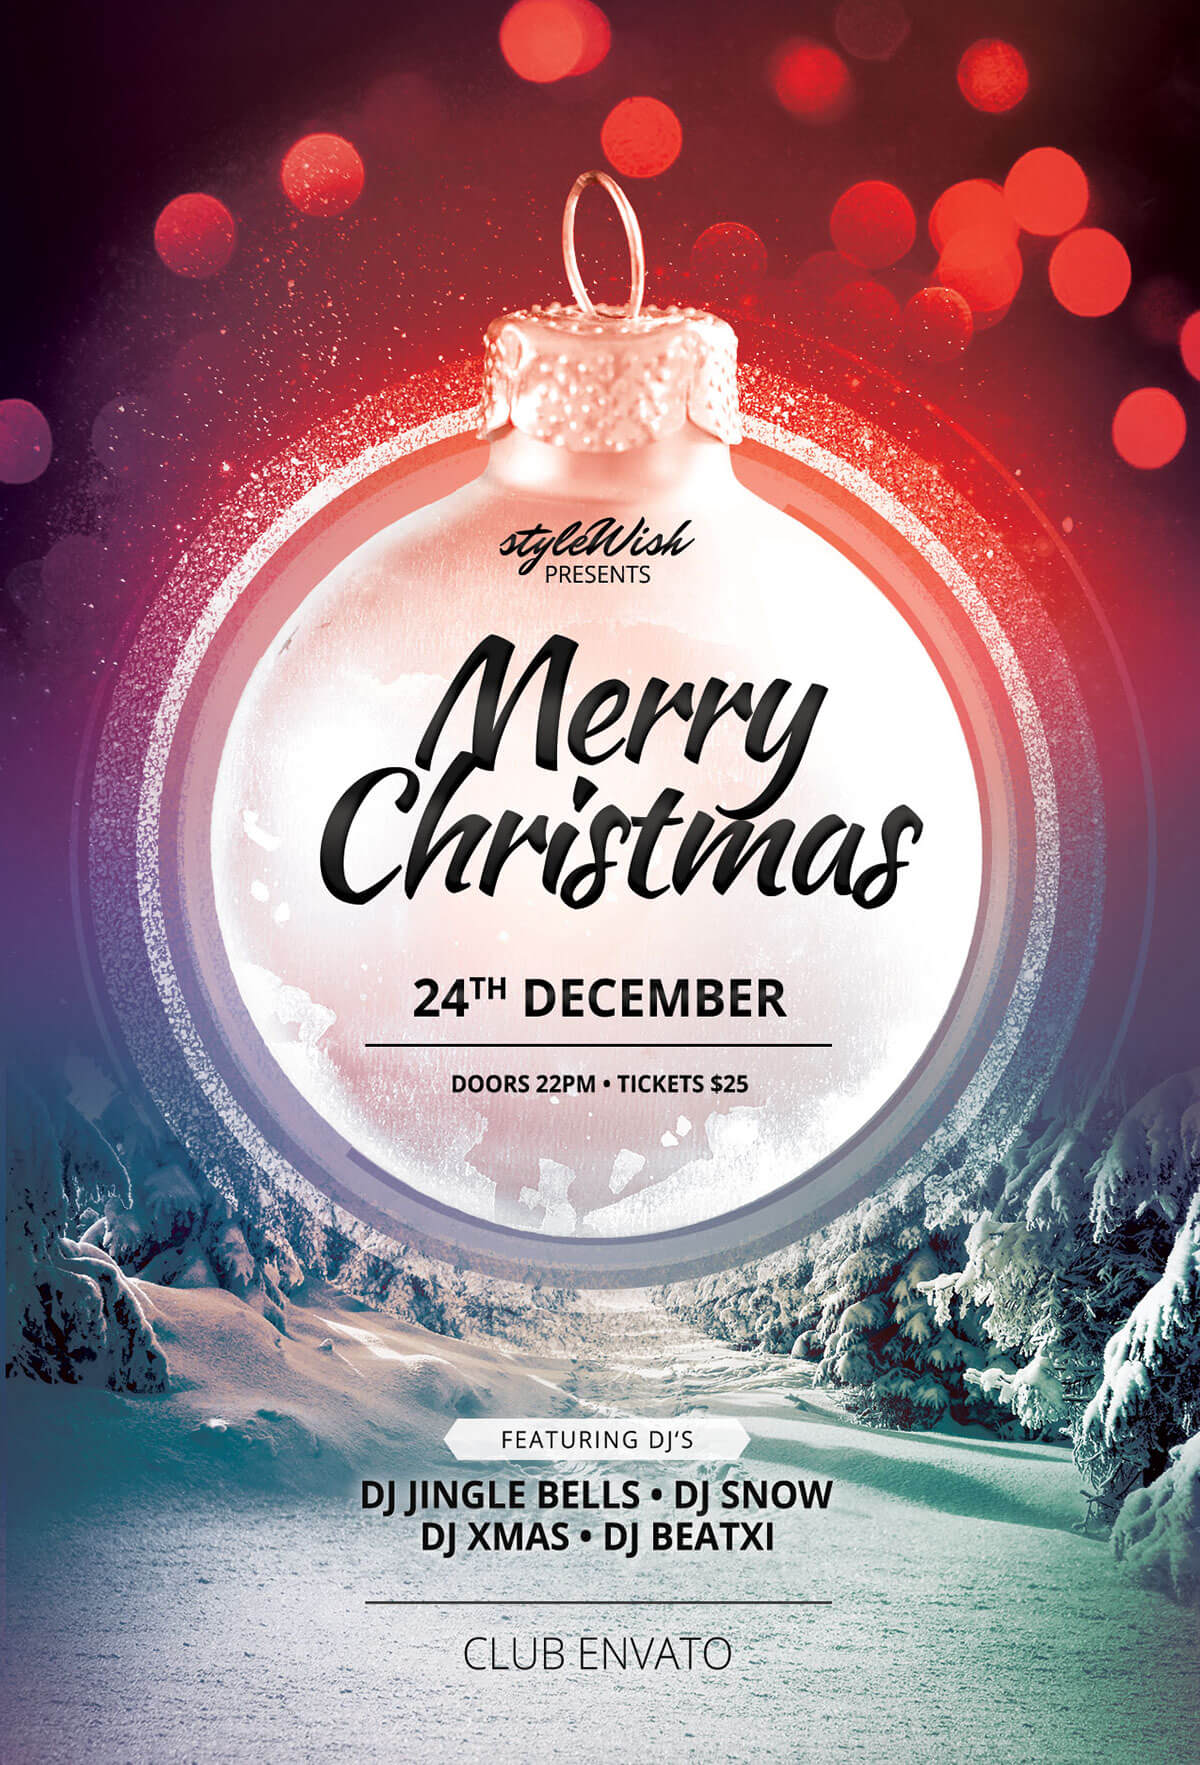 Merry Christmas Flyer – Calep.midnightpig.co Intended For Christmas Brochure Templates Free